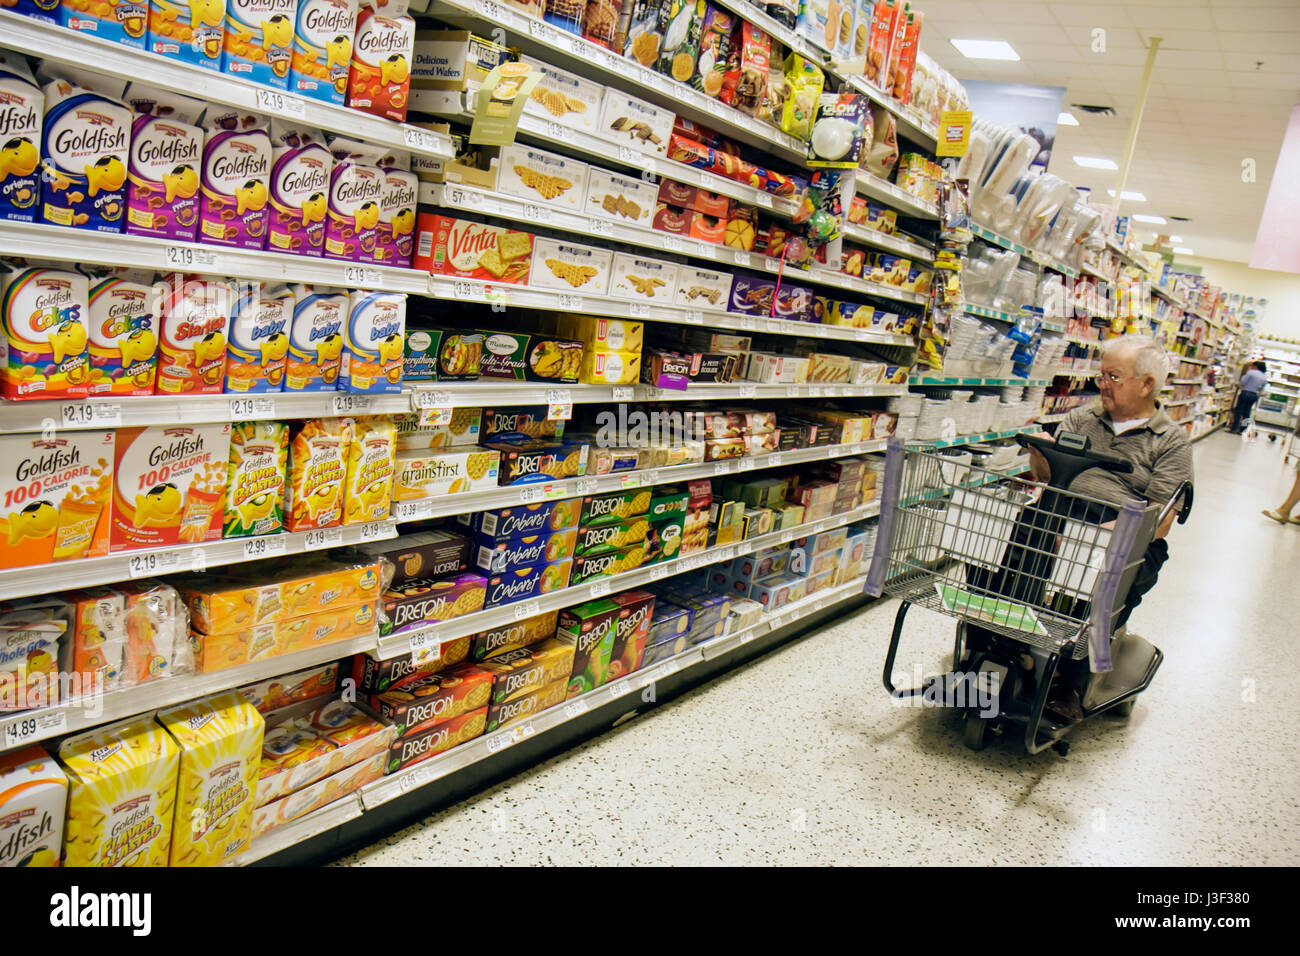 Electric Shopping Trolley Stock Photos Wiring Money Publix Miami Beach Florida Grocery Store Supermarket Accessibility Man Senior Aisle Shelves Product Food Package